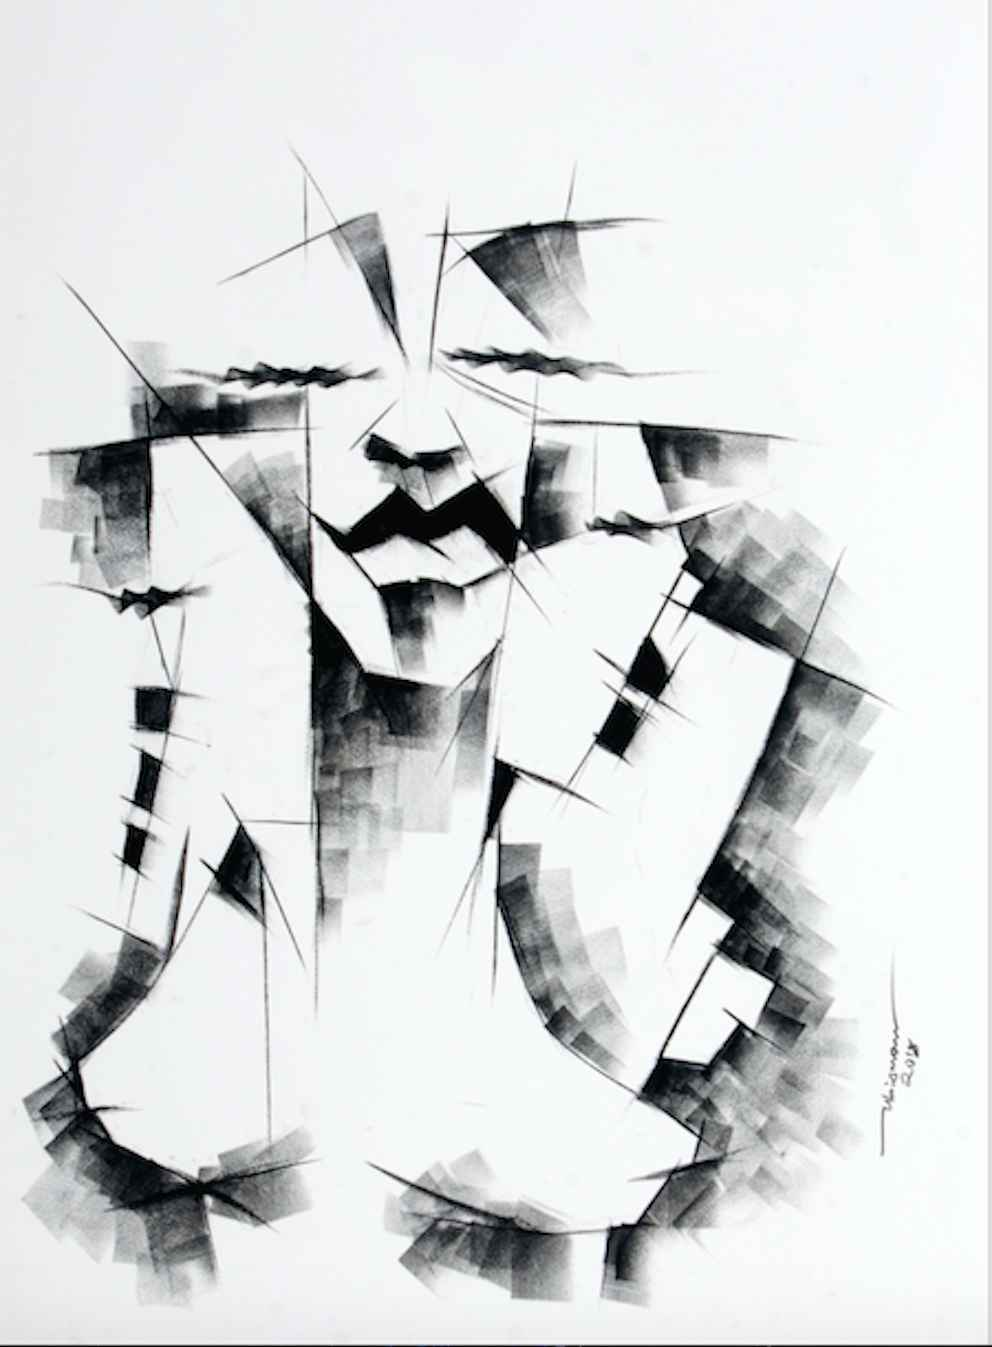 Faces I by Mr Ubiomo Ogheneroh - Masterpiece Online